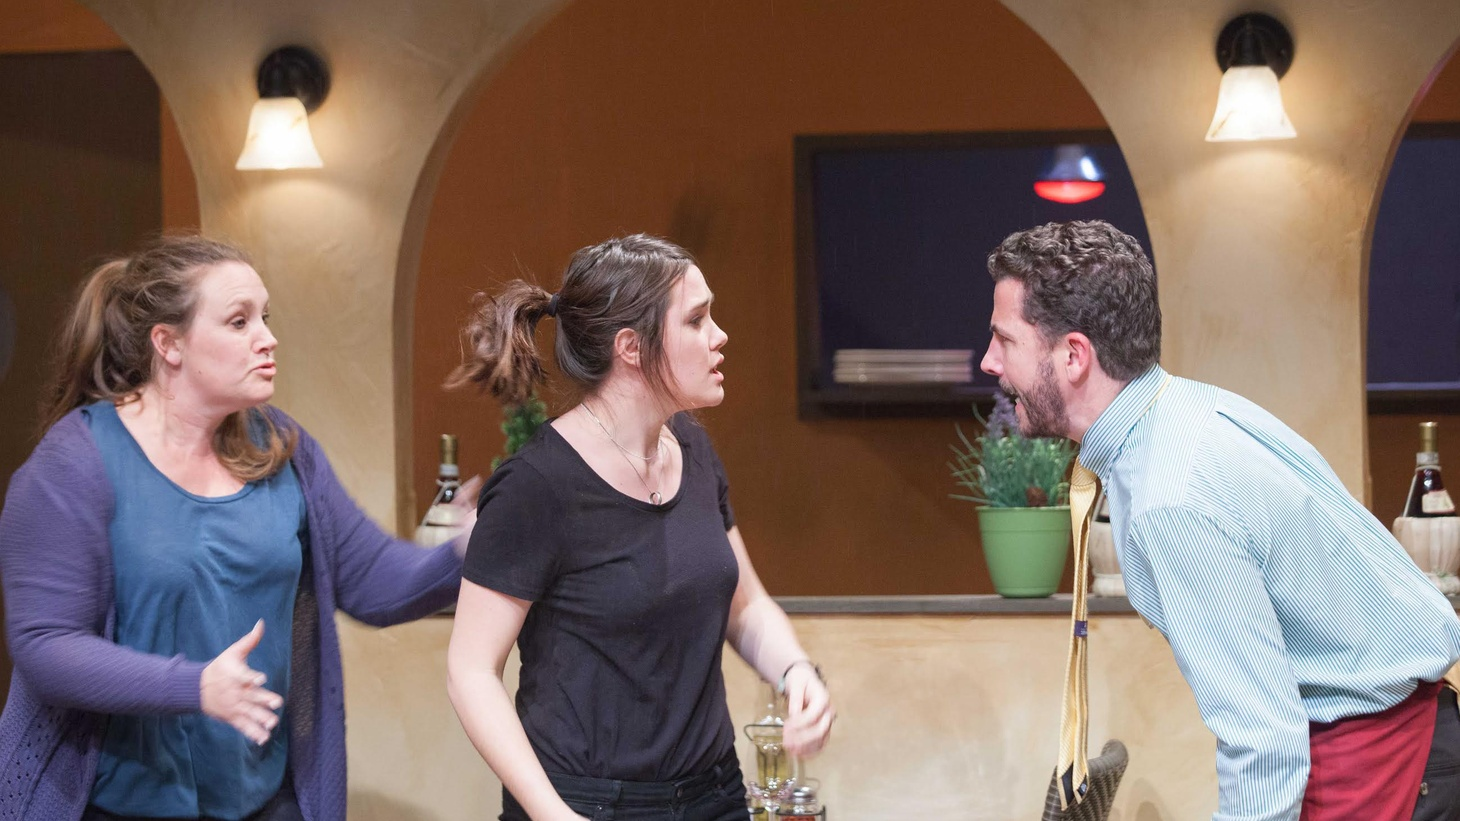 With Pocatello, Rogue Machine Theater returns to Samuel D. Hunter's small town, Idaho, this time with the closing of an olive garden. But the play's less about the closing of a chain restaurant and more about the loss of a way of life.